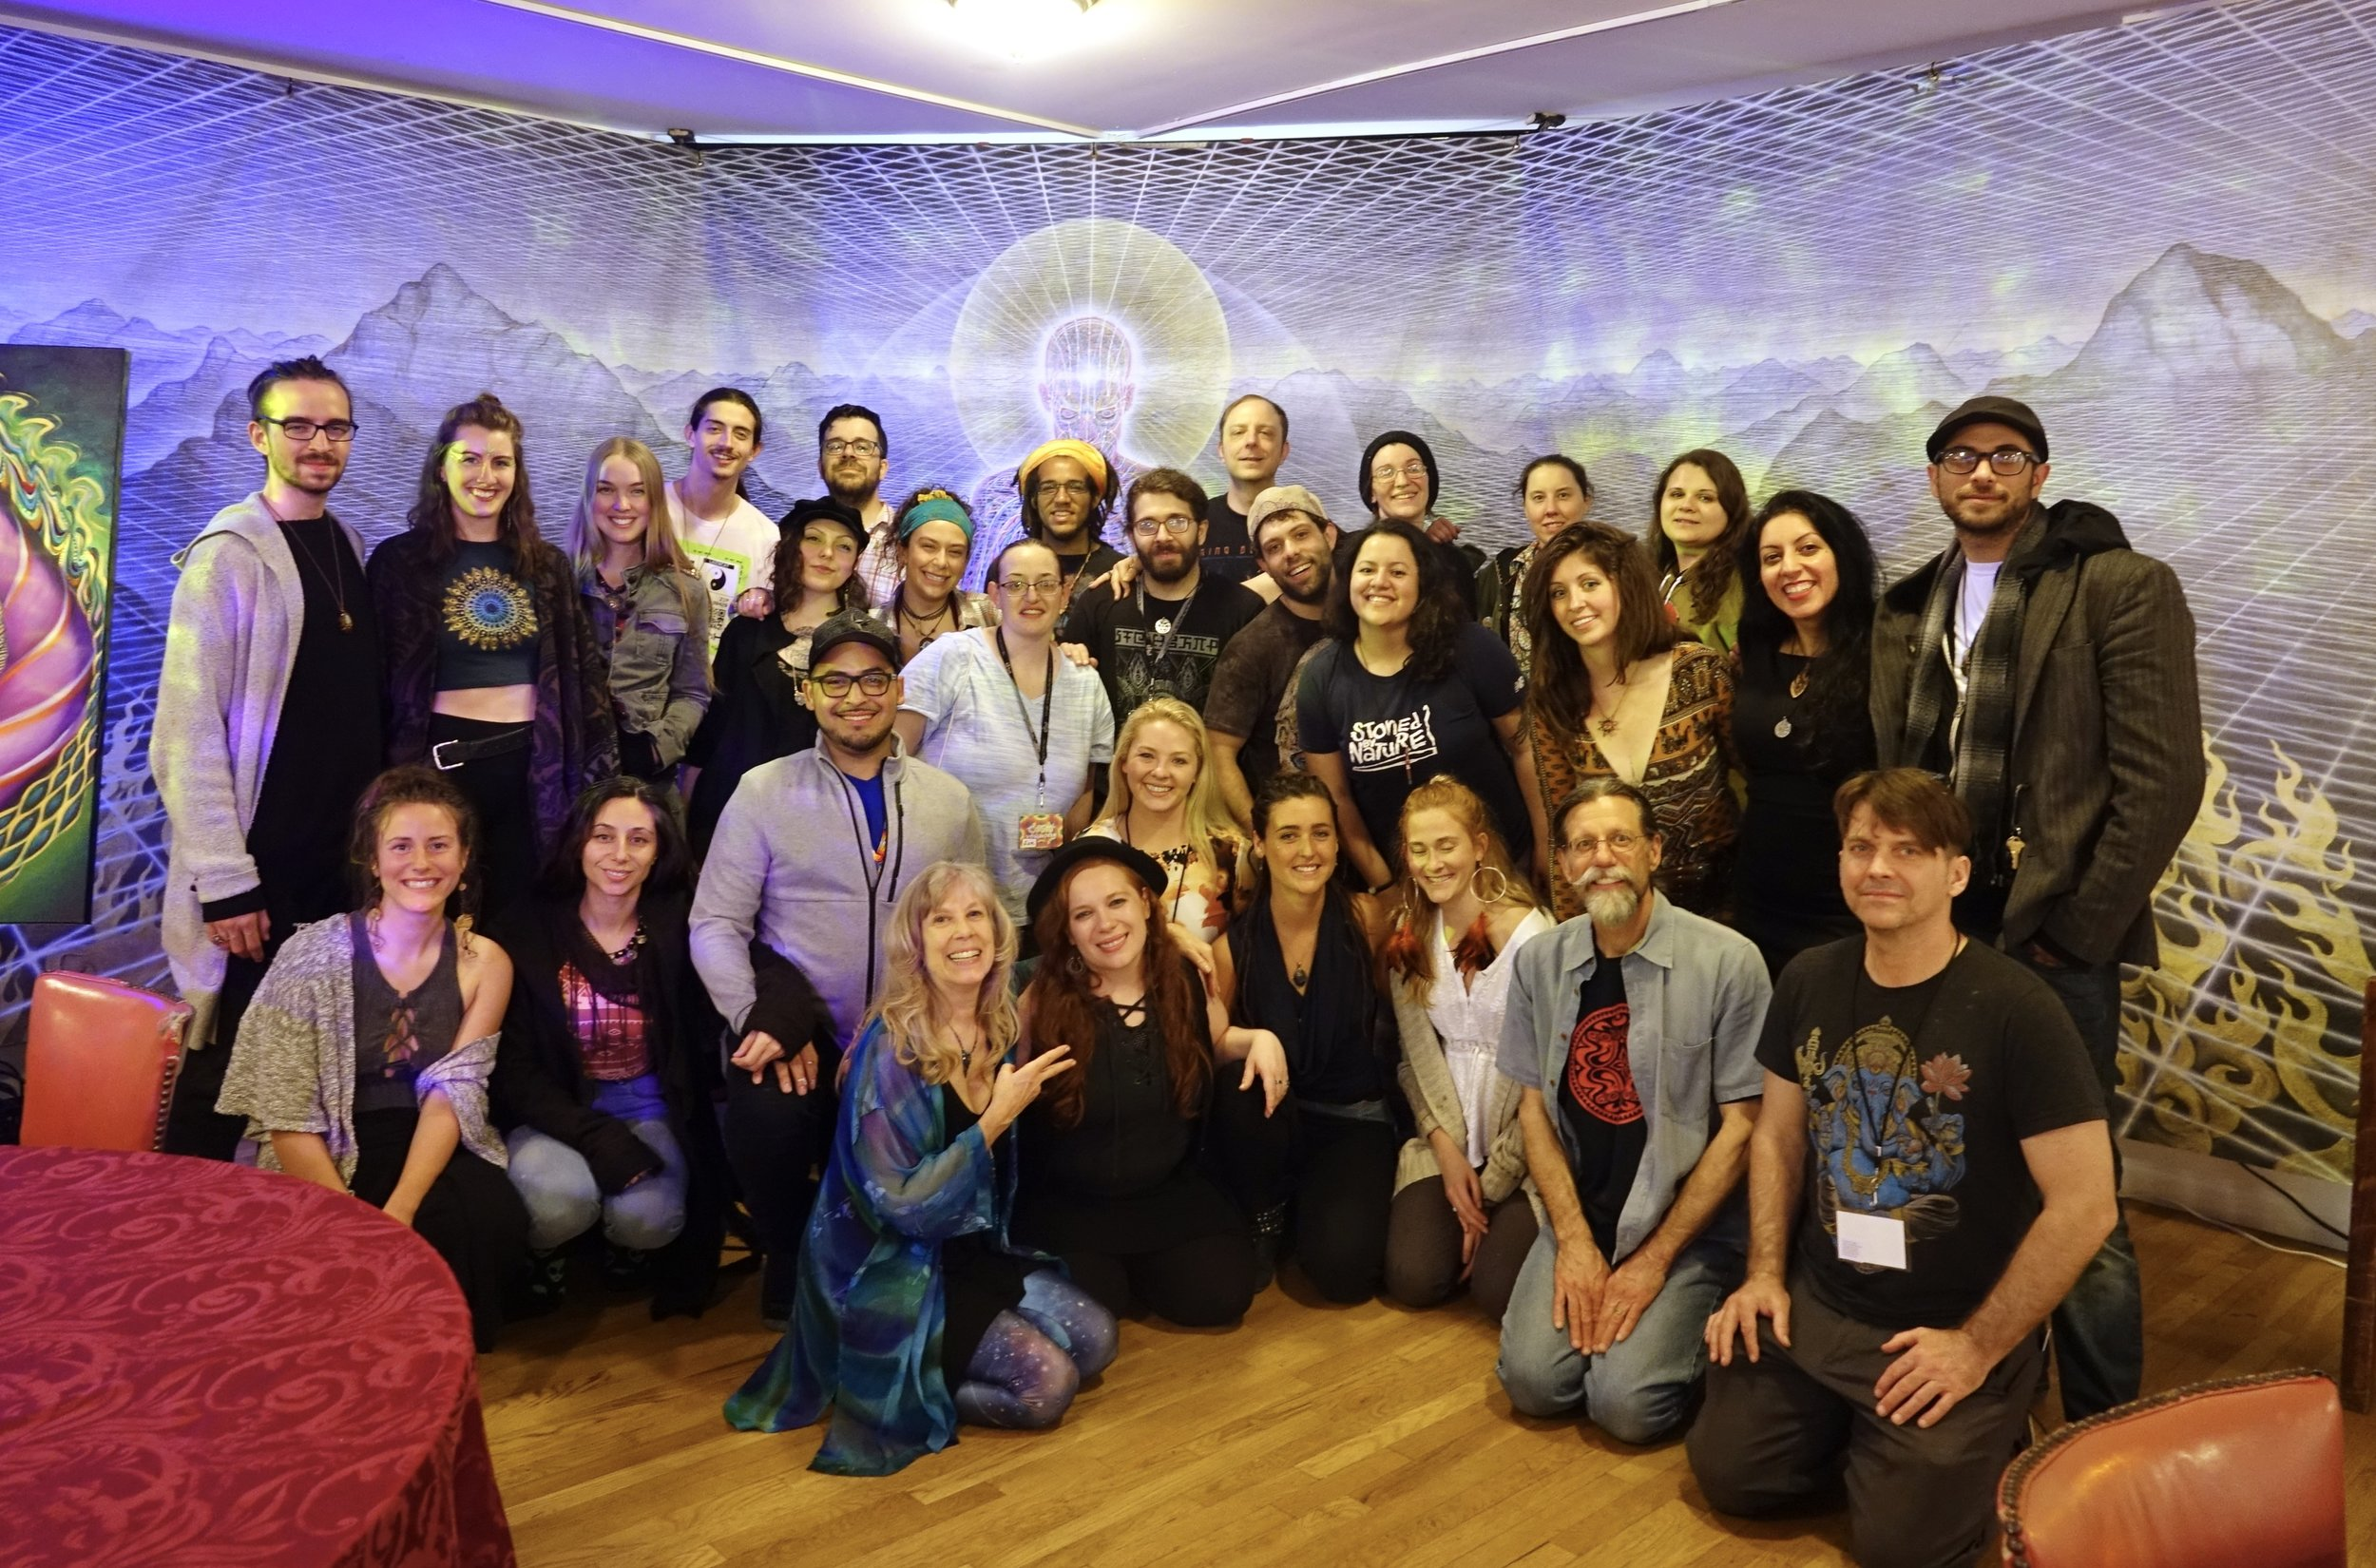 "Volunteering at COSM - This is from April 2019 full moon at COSM, where I volunteered in the Mushroom Cafe. I have been a fan of the artwork of Alex Grey since I started visiting NYC in the aughts, when the full moon gatherings were held in Manhattan. I have been yearning to be a part of this community and this is my first step at making that happen.""CoSM stands for Chapel of Sacred Mirrors. The Sacred Mirrors, a series of artworks by Alex Grey, allow us to see ourselves and each other as reflections of the divine. The mission of CoSM is to build a sacred temple to inspire a global community and leave a legacy of our creative spiritual generation."""